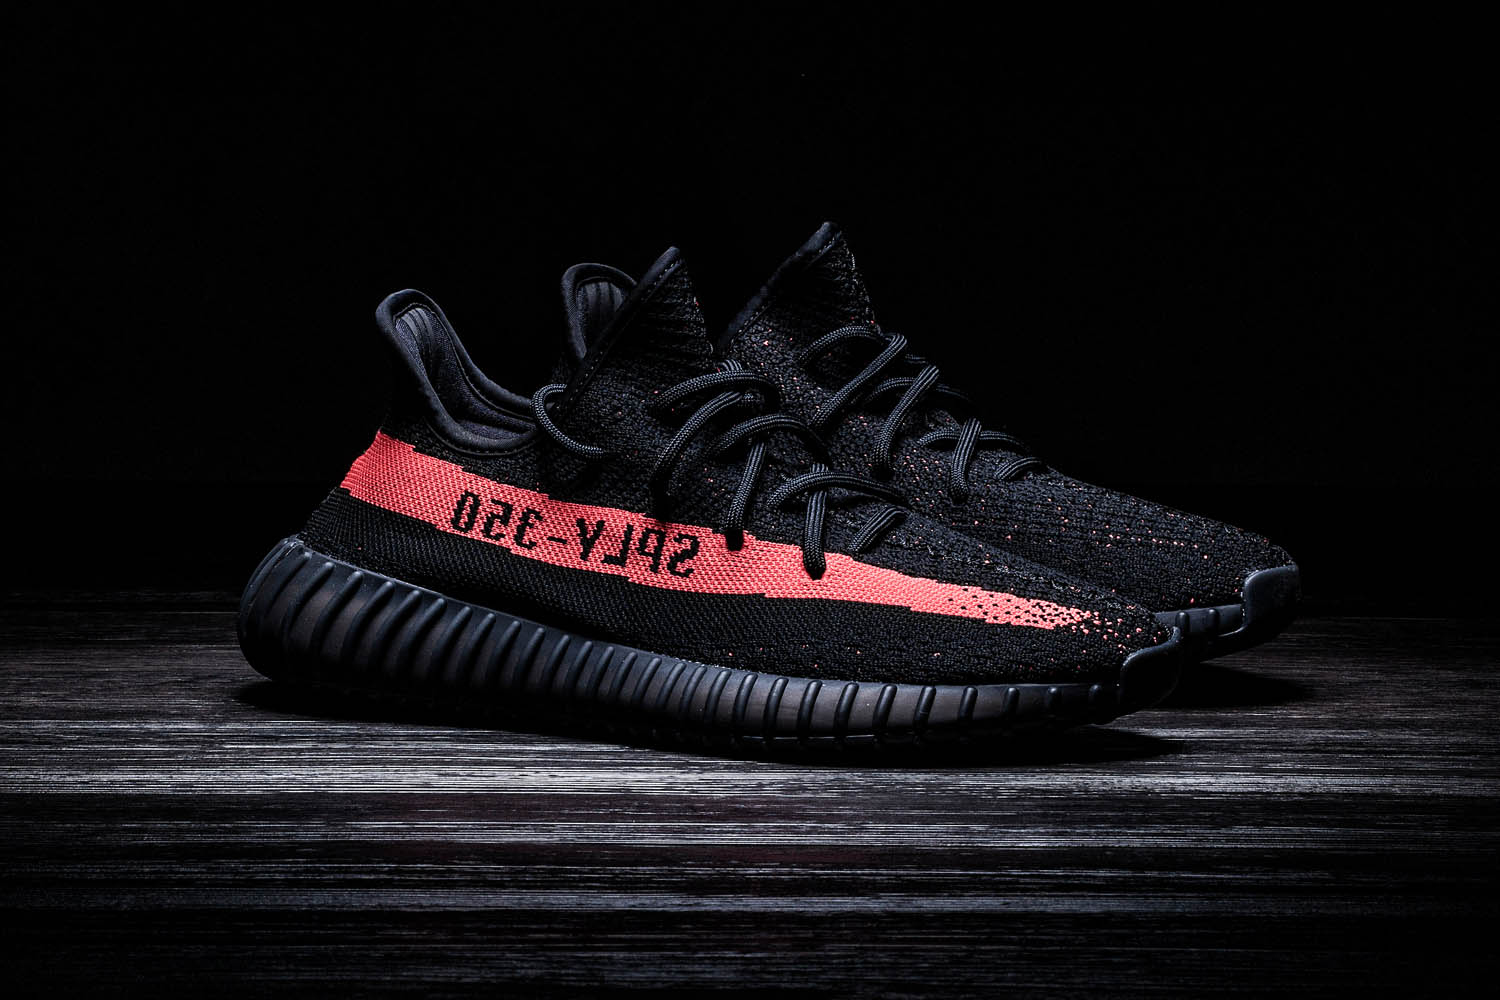 13a157a575b61 TOP 3 OUTFITS! ( Adidas Yeezy Boost 350 V2 Bred) Jannis